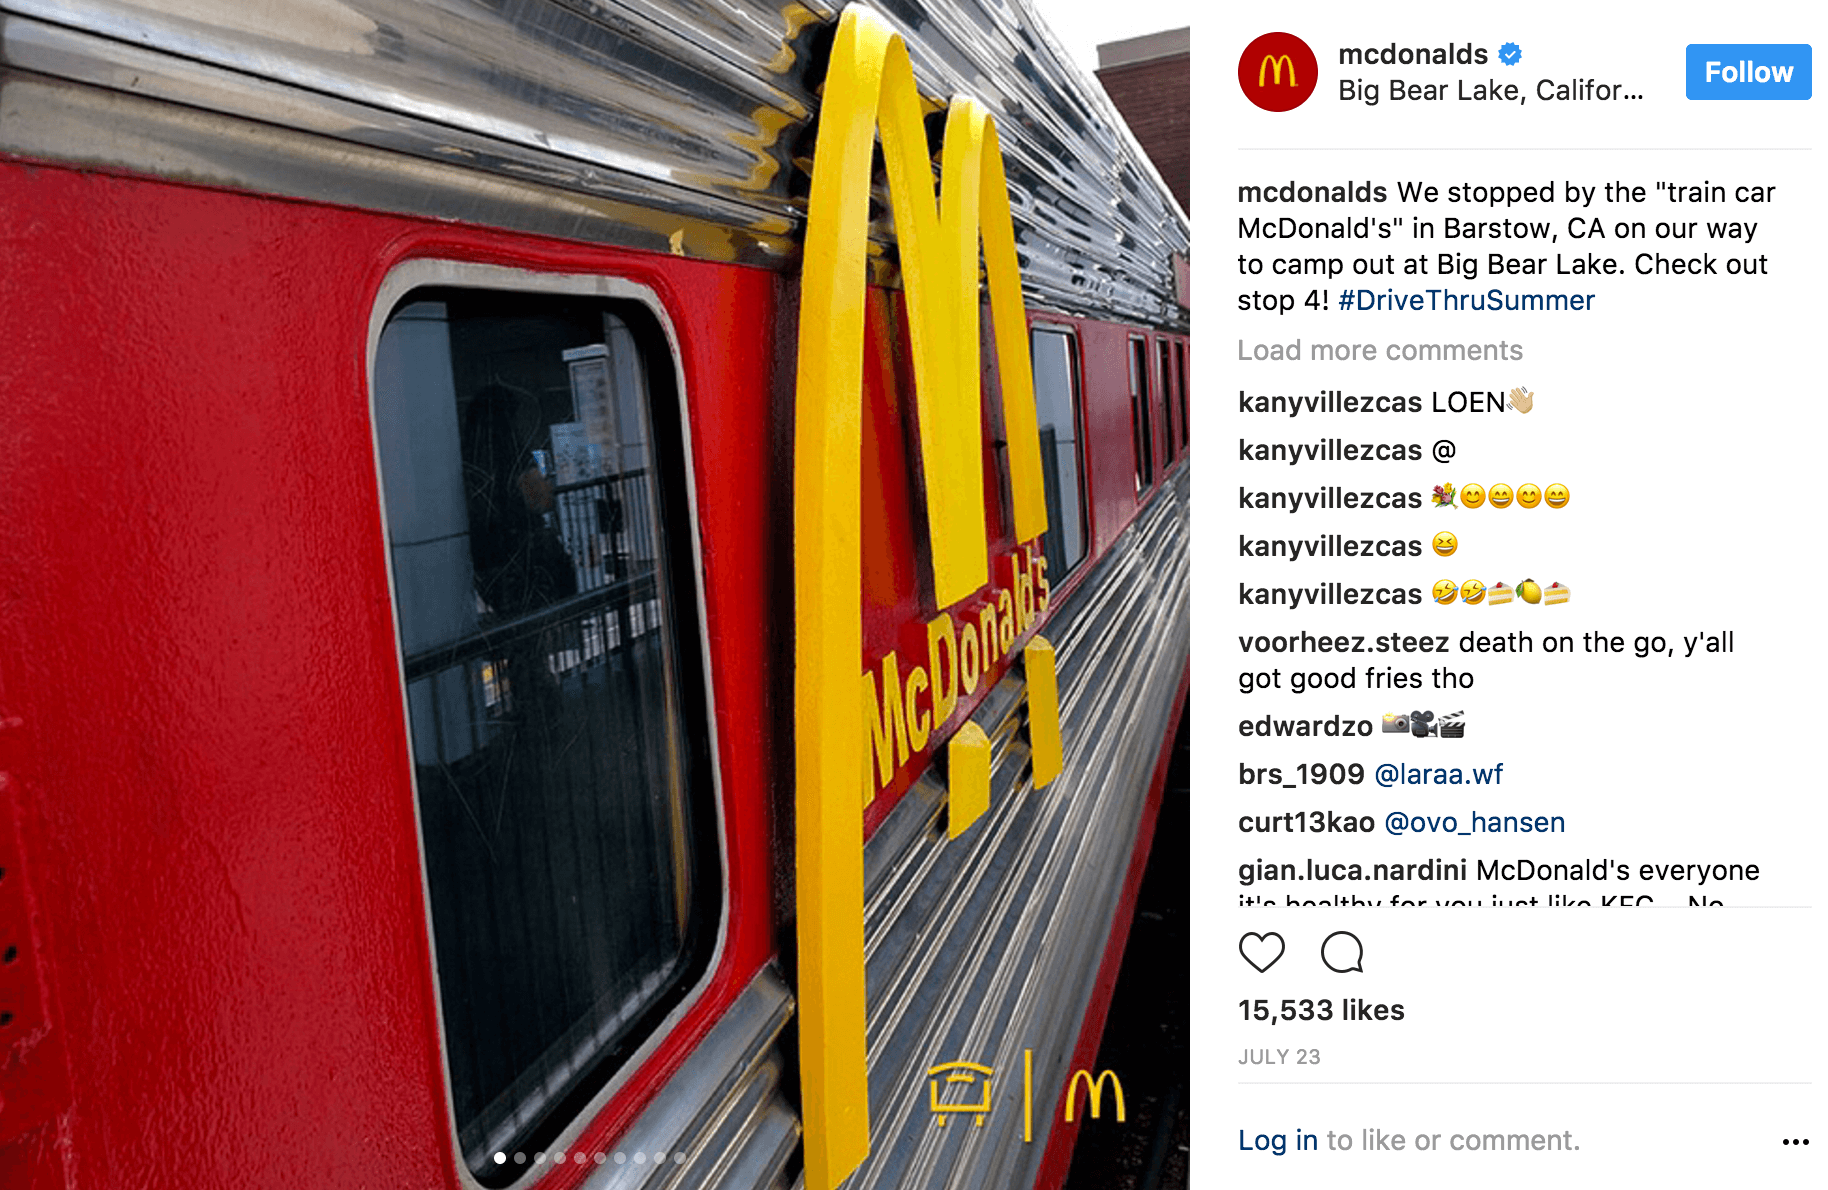 McDonalds Instagram